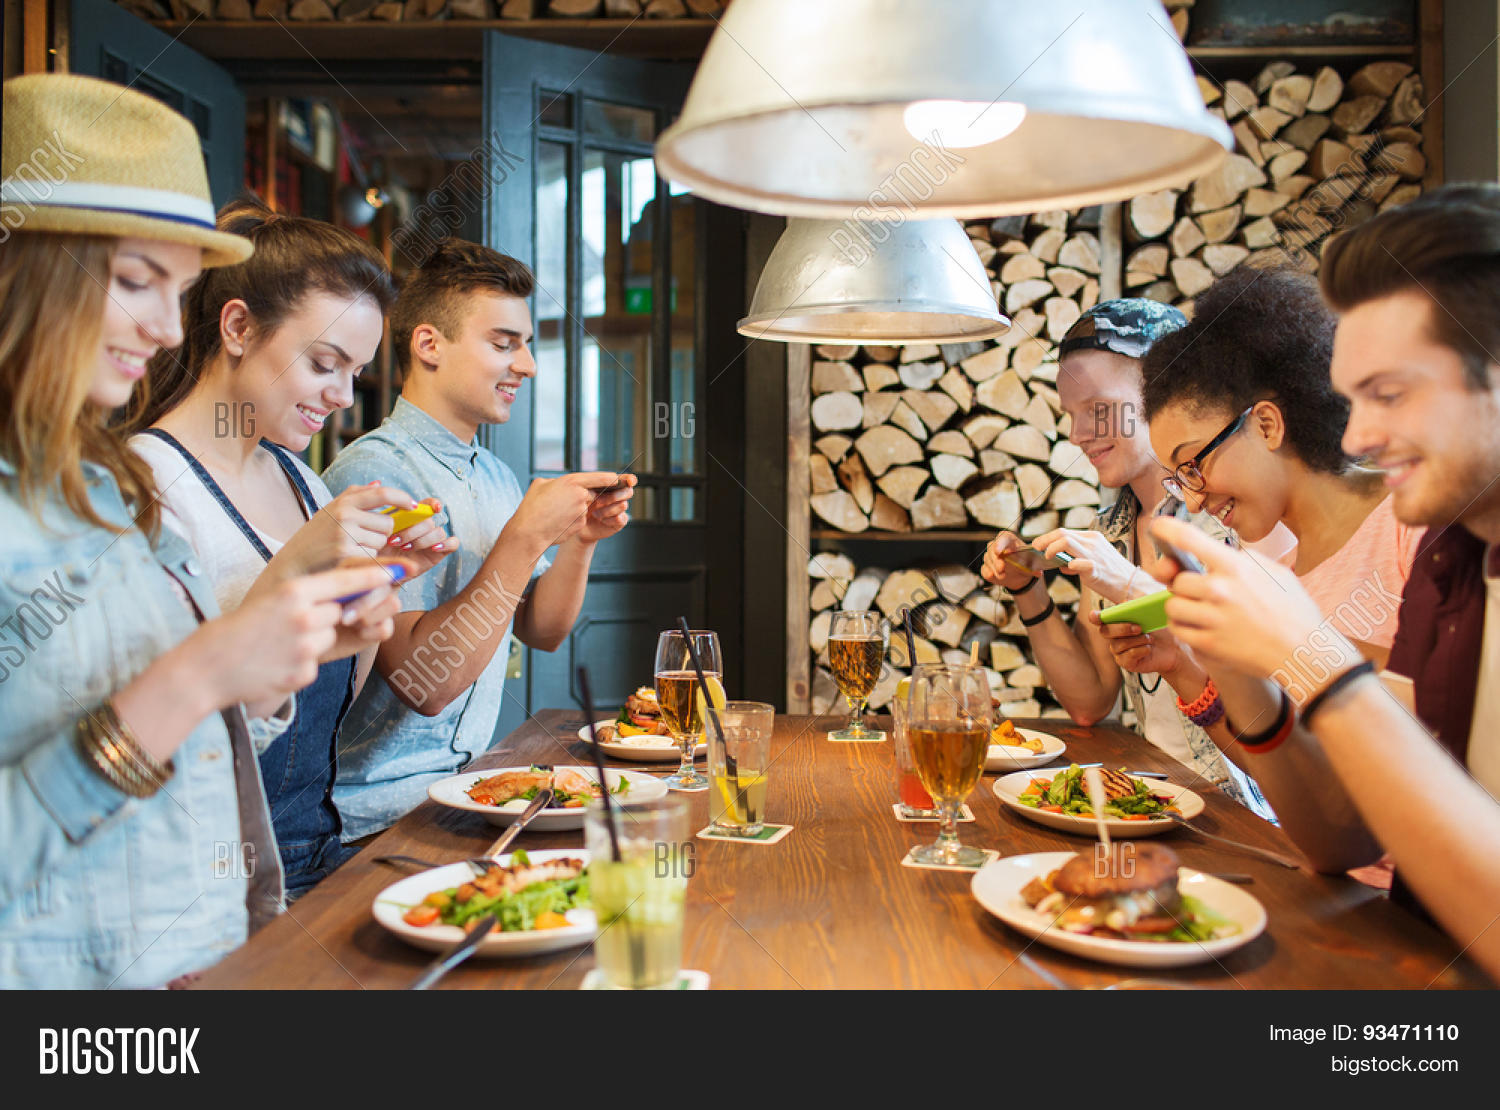 people-taking-pic-of-food